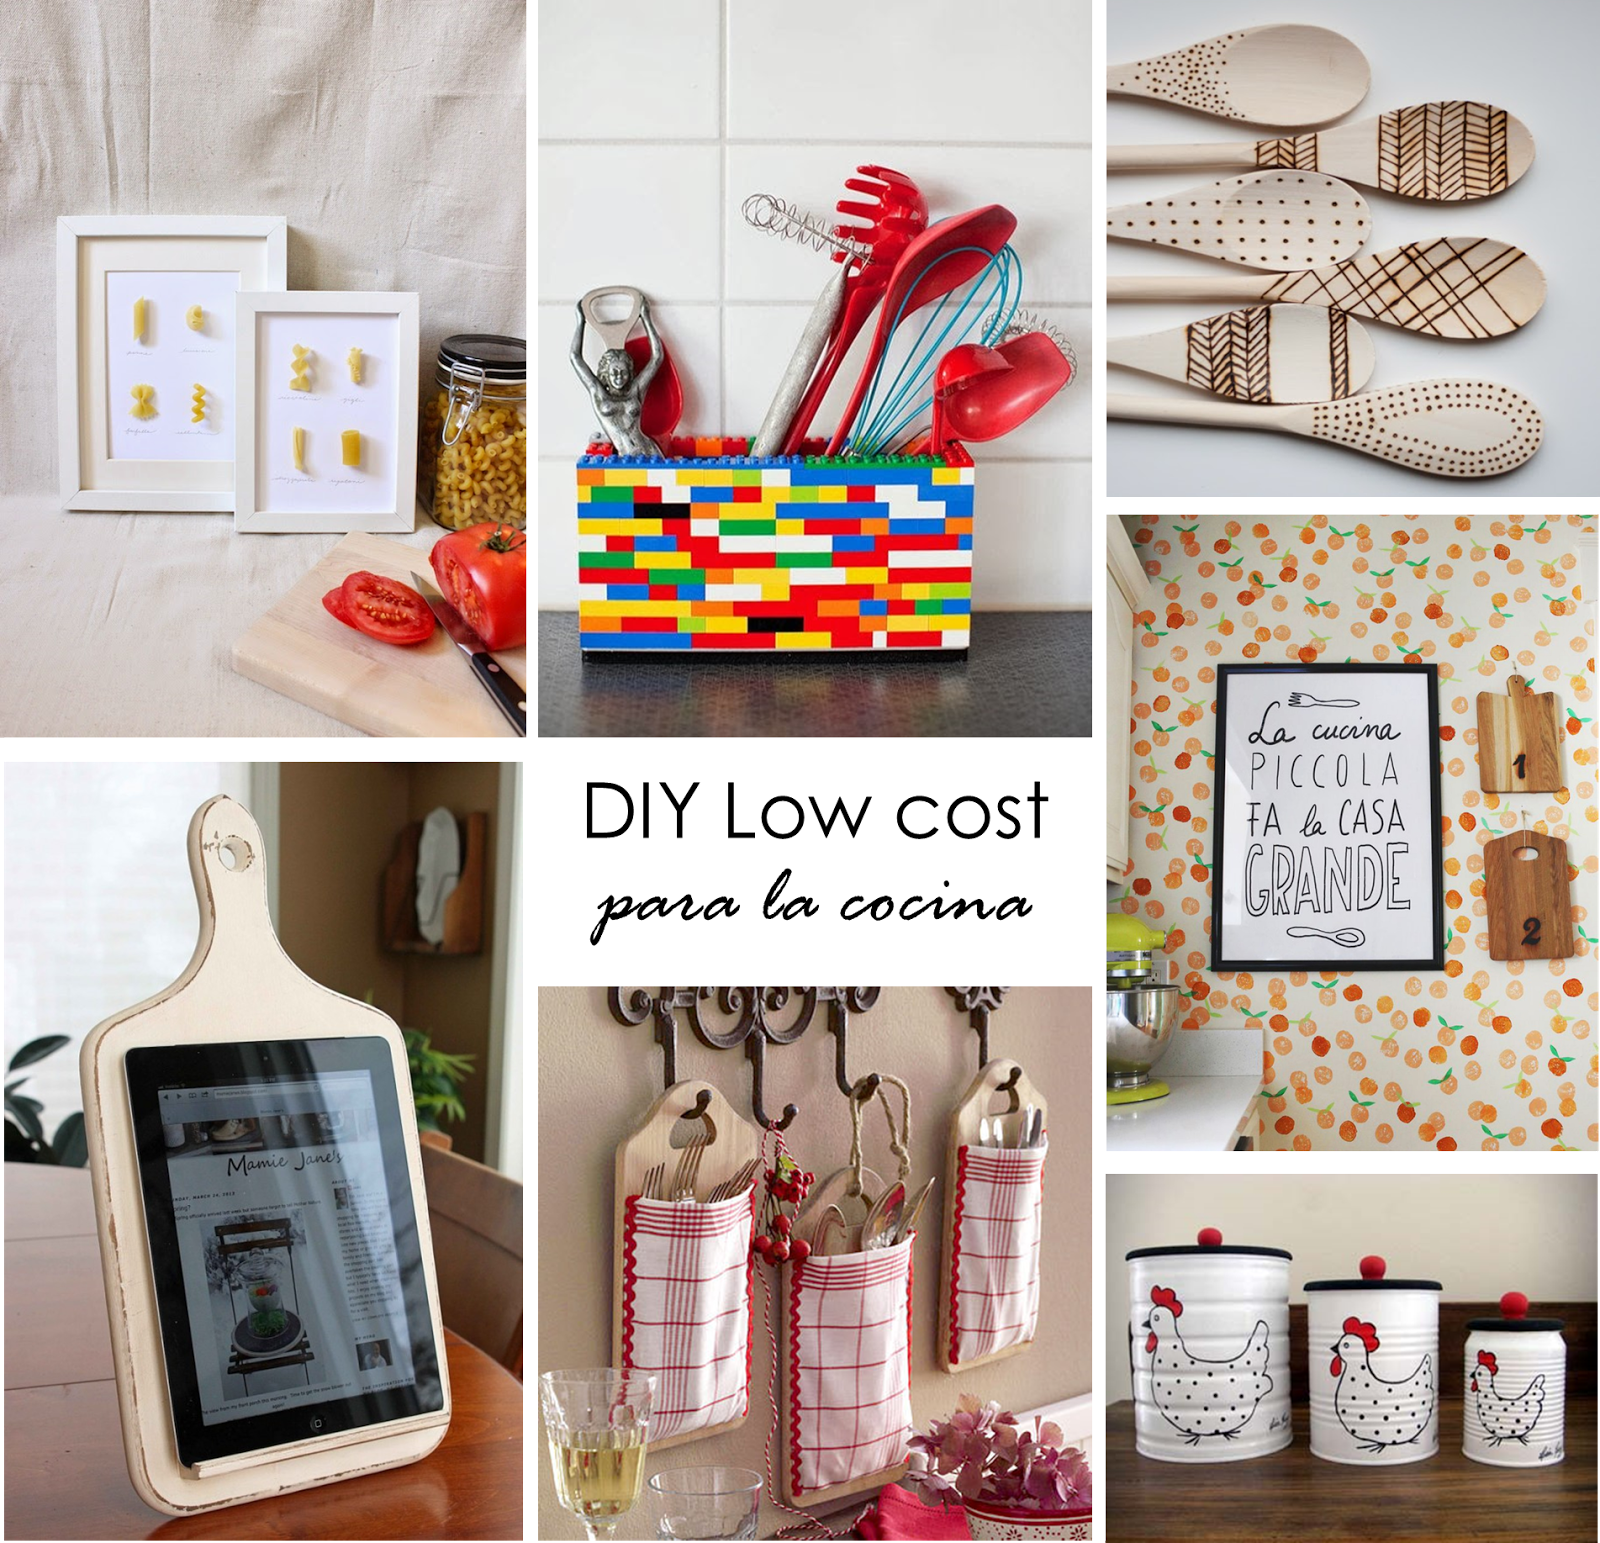 Small lowcost 8 ideas diy para tu cocina decorar tu for Ideas como decorar tu casa